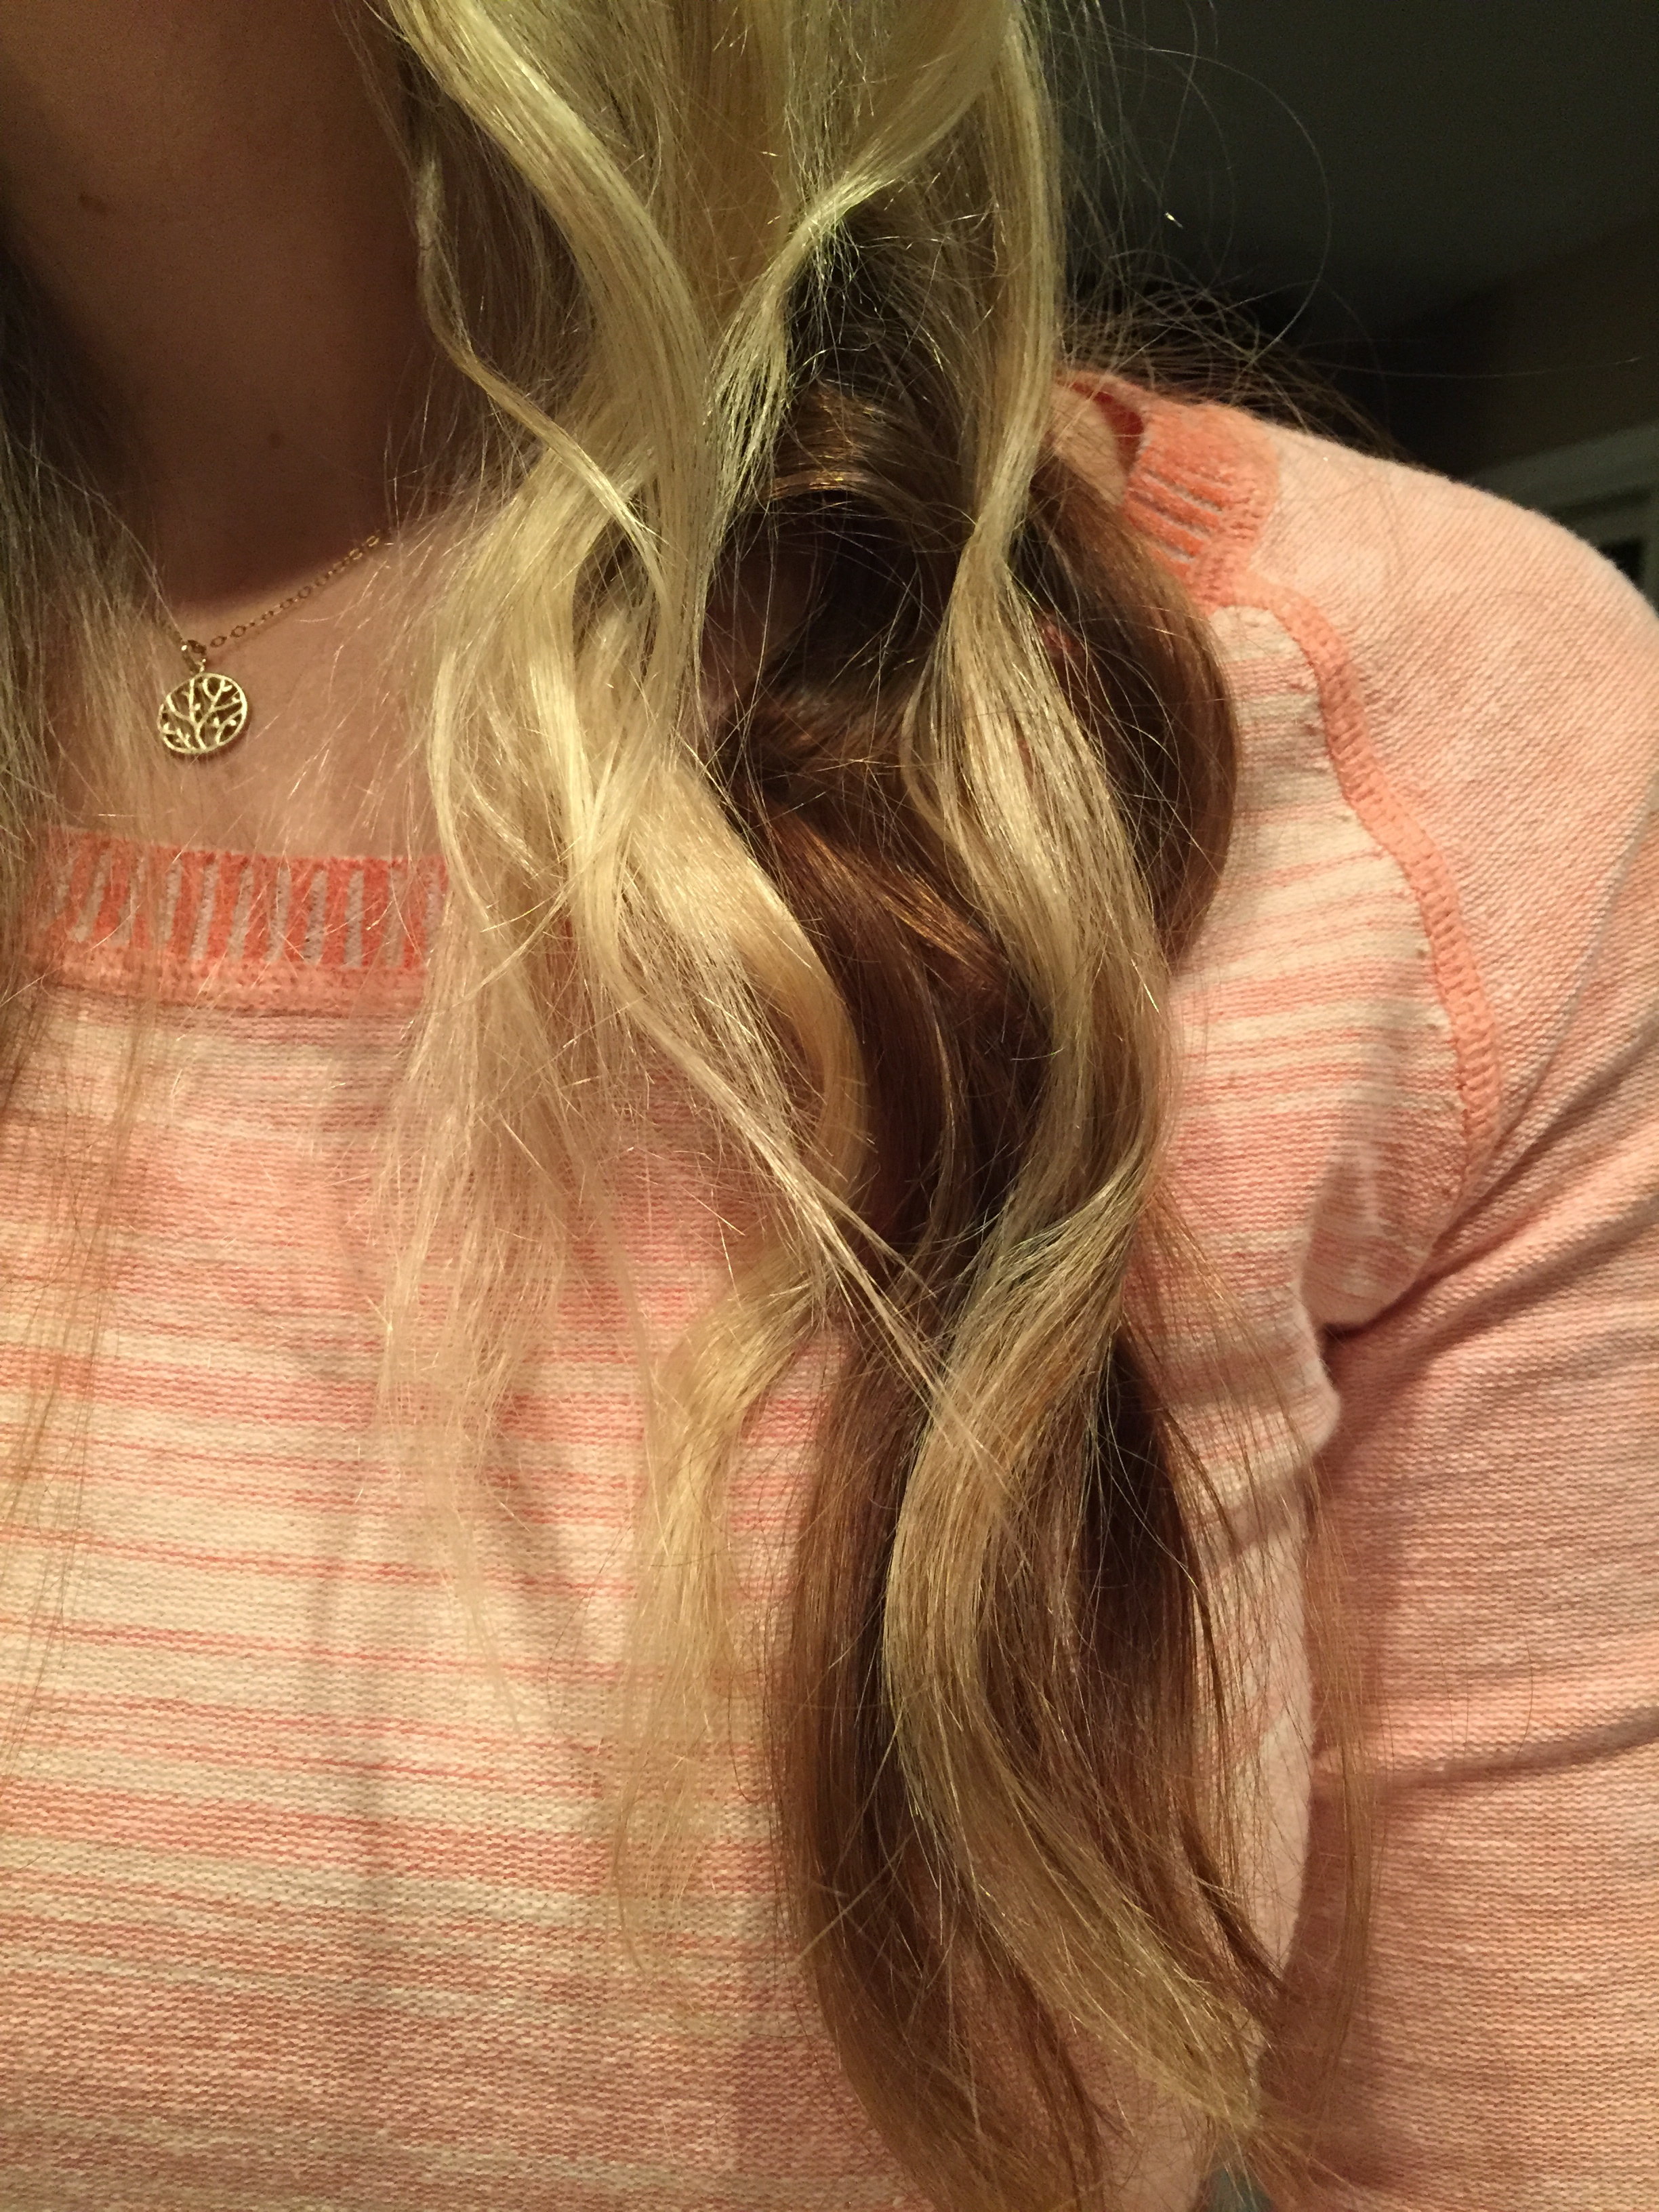 Curling Iron, Curling wand, beauty tips, DYI, reuse, beauty project, the everyday journalista